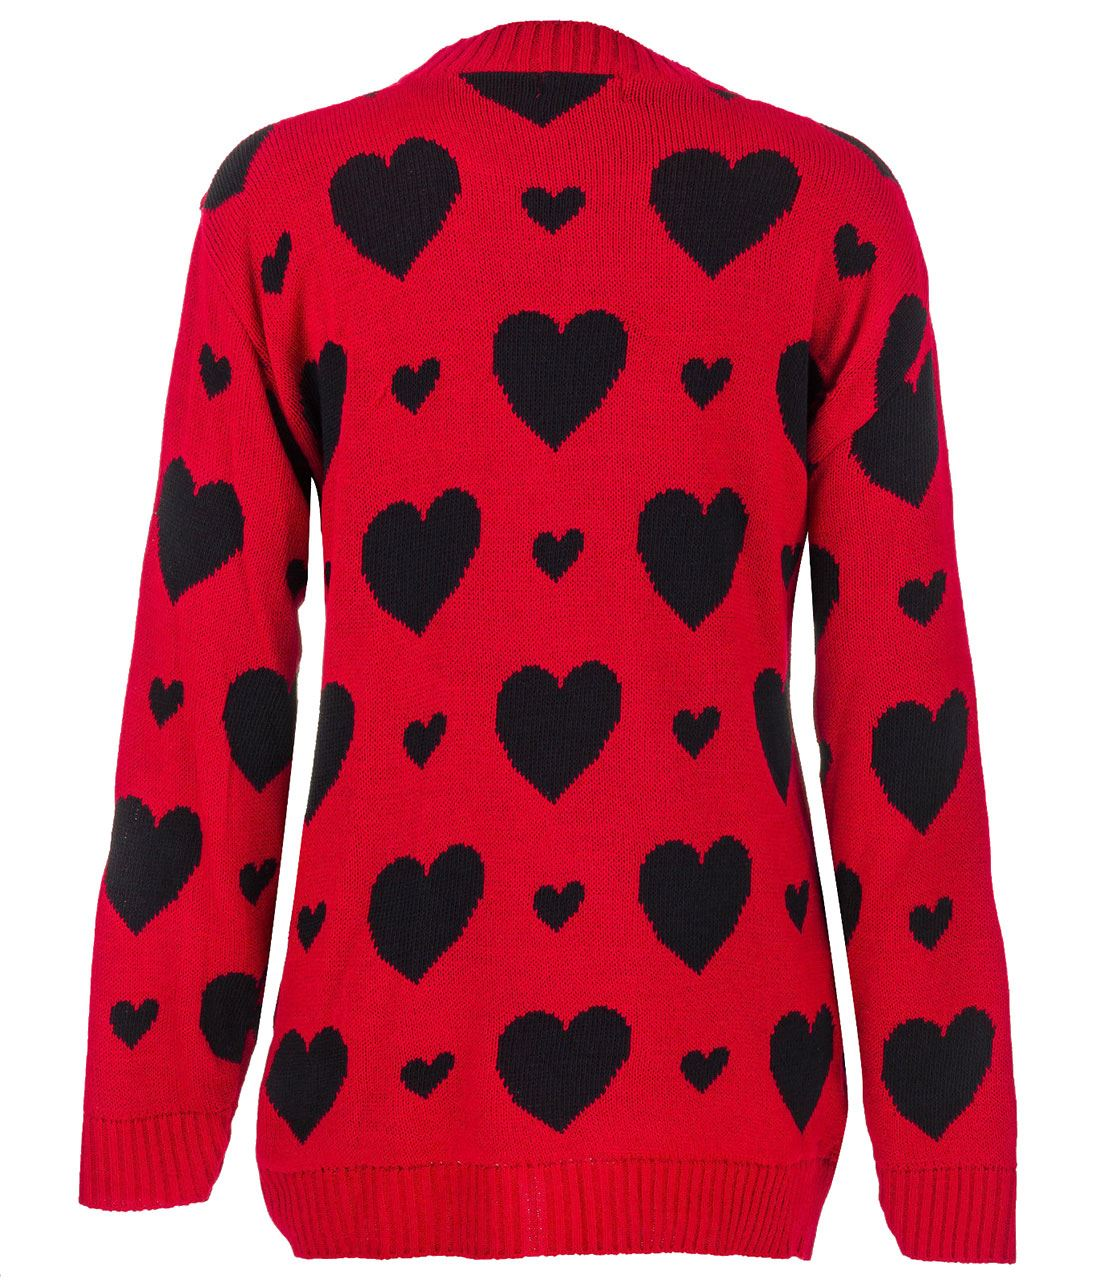 Ladies Long Sleeves Hearts All Over Print Knit Jumper Womens Casual Cardigan Lot